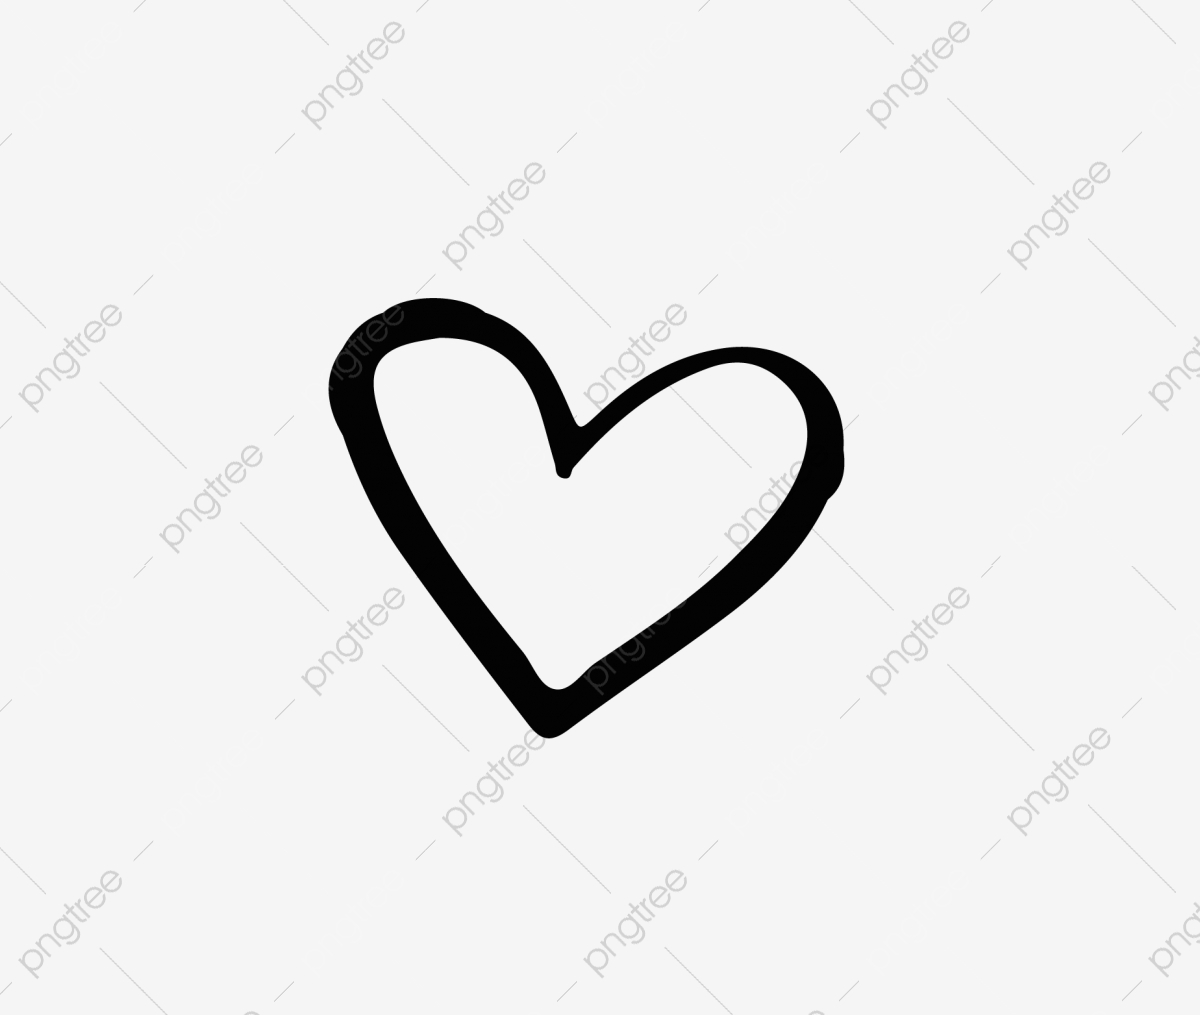 Hand Drawn Heart Shaped Vector, Heart Outline, Love Heart, Heart.